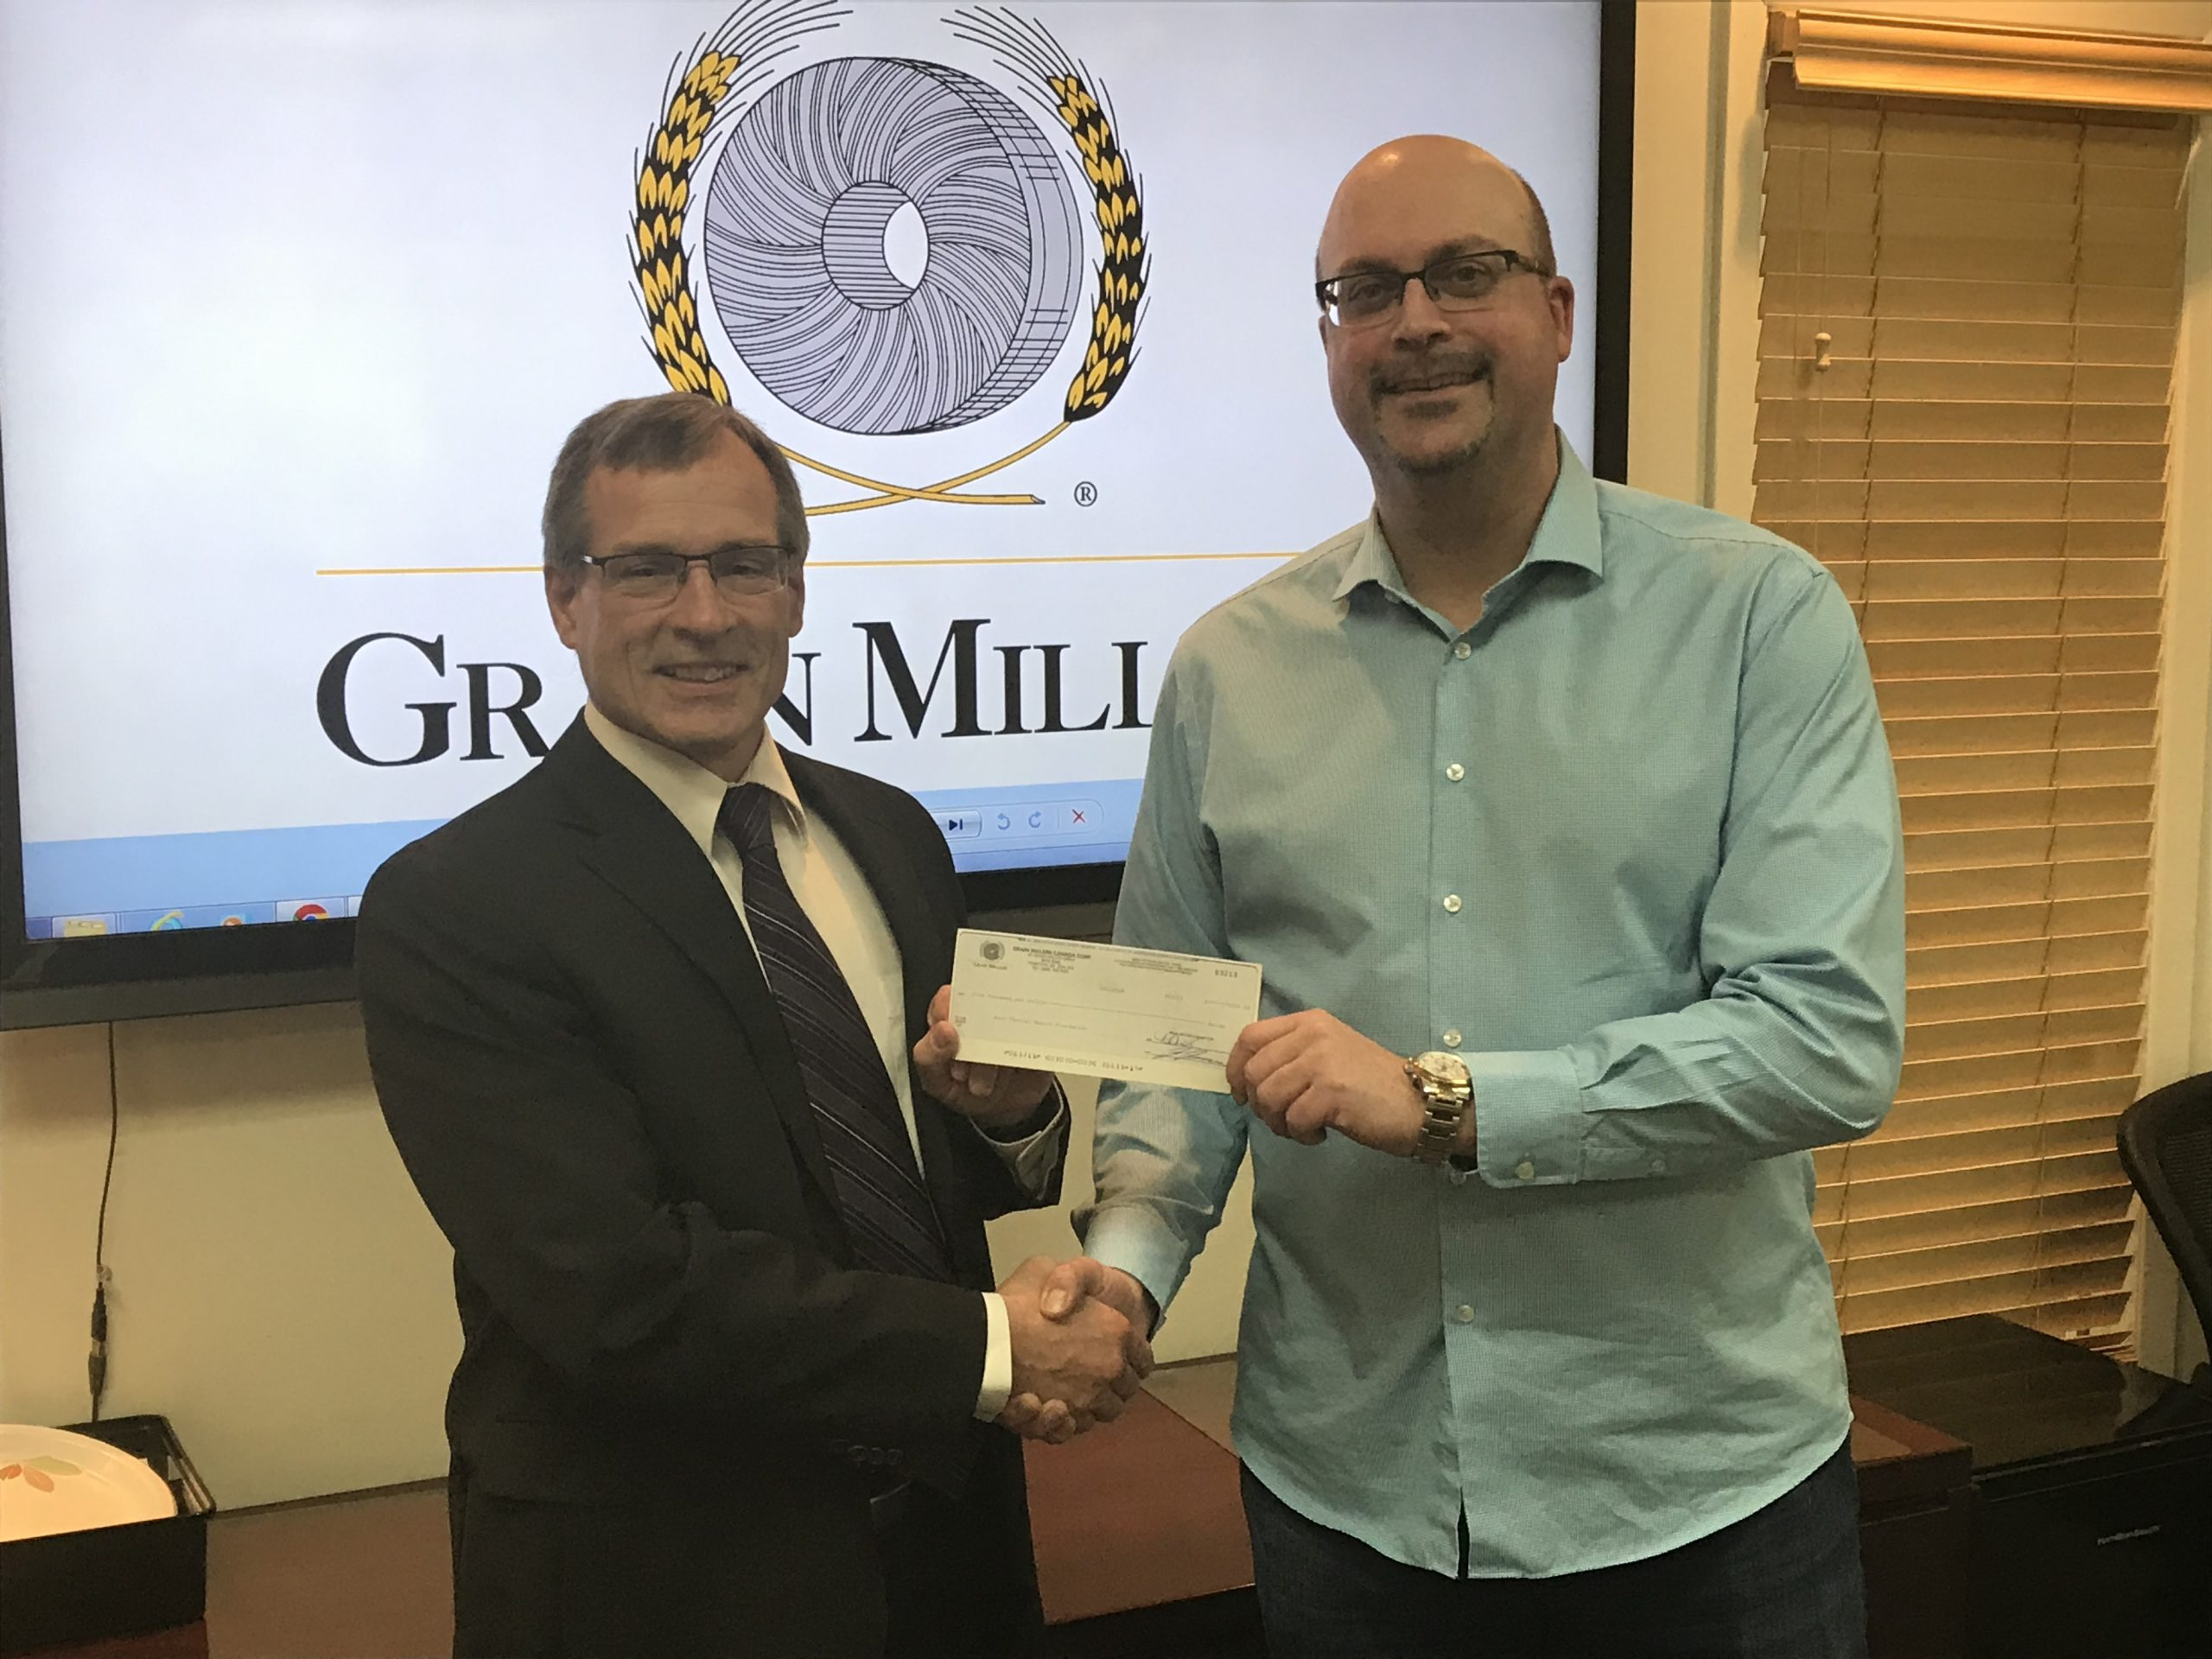 Grain Millers Donates to Health Foundation